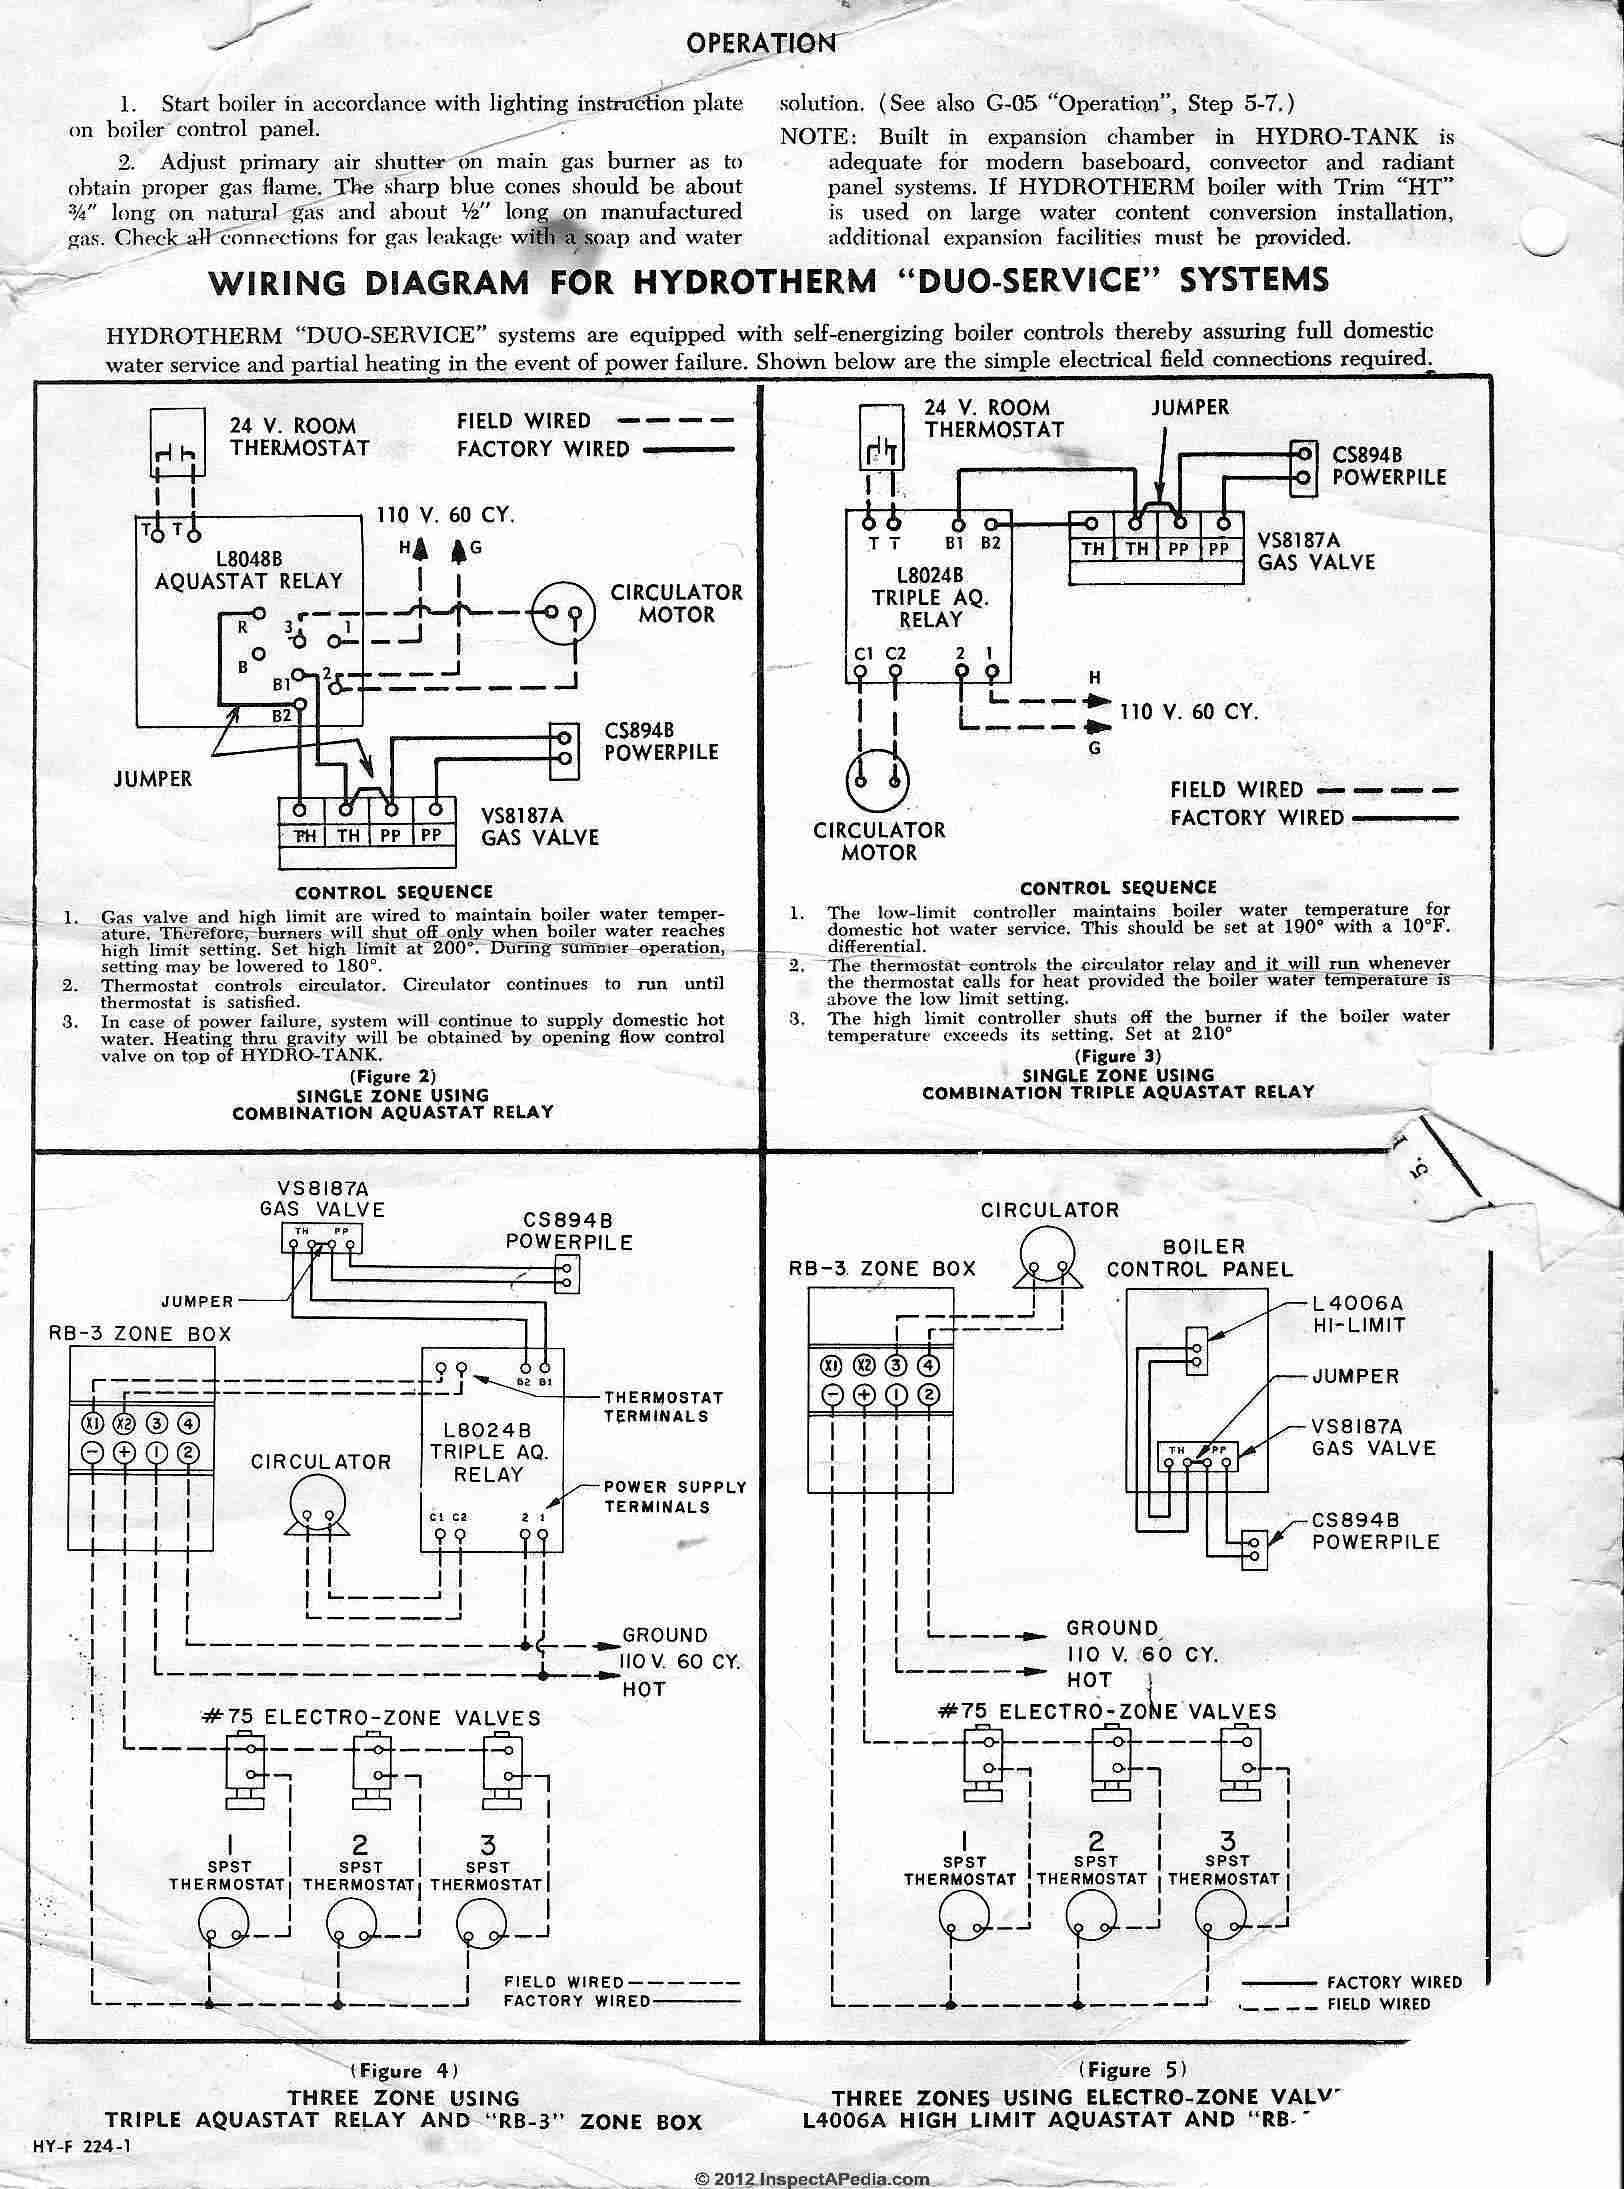 L8024B_Aquastat_0422_DJFcs heating boiler aquastat control diagnosis, troubleshooting, repair amtrol boilermate wiring diagram at n-0.co